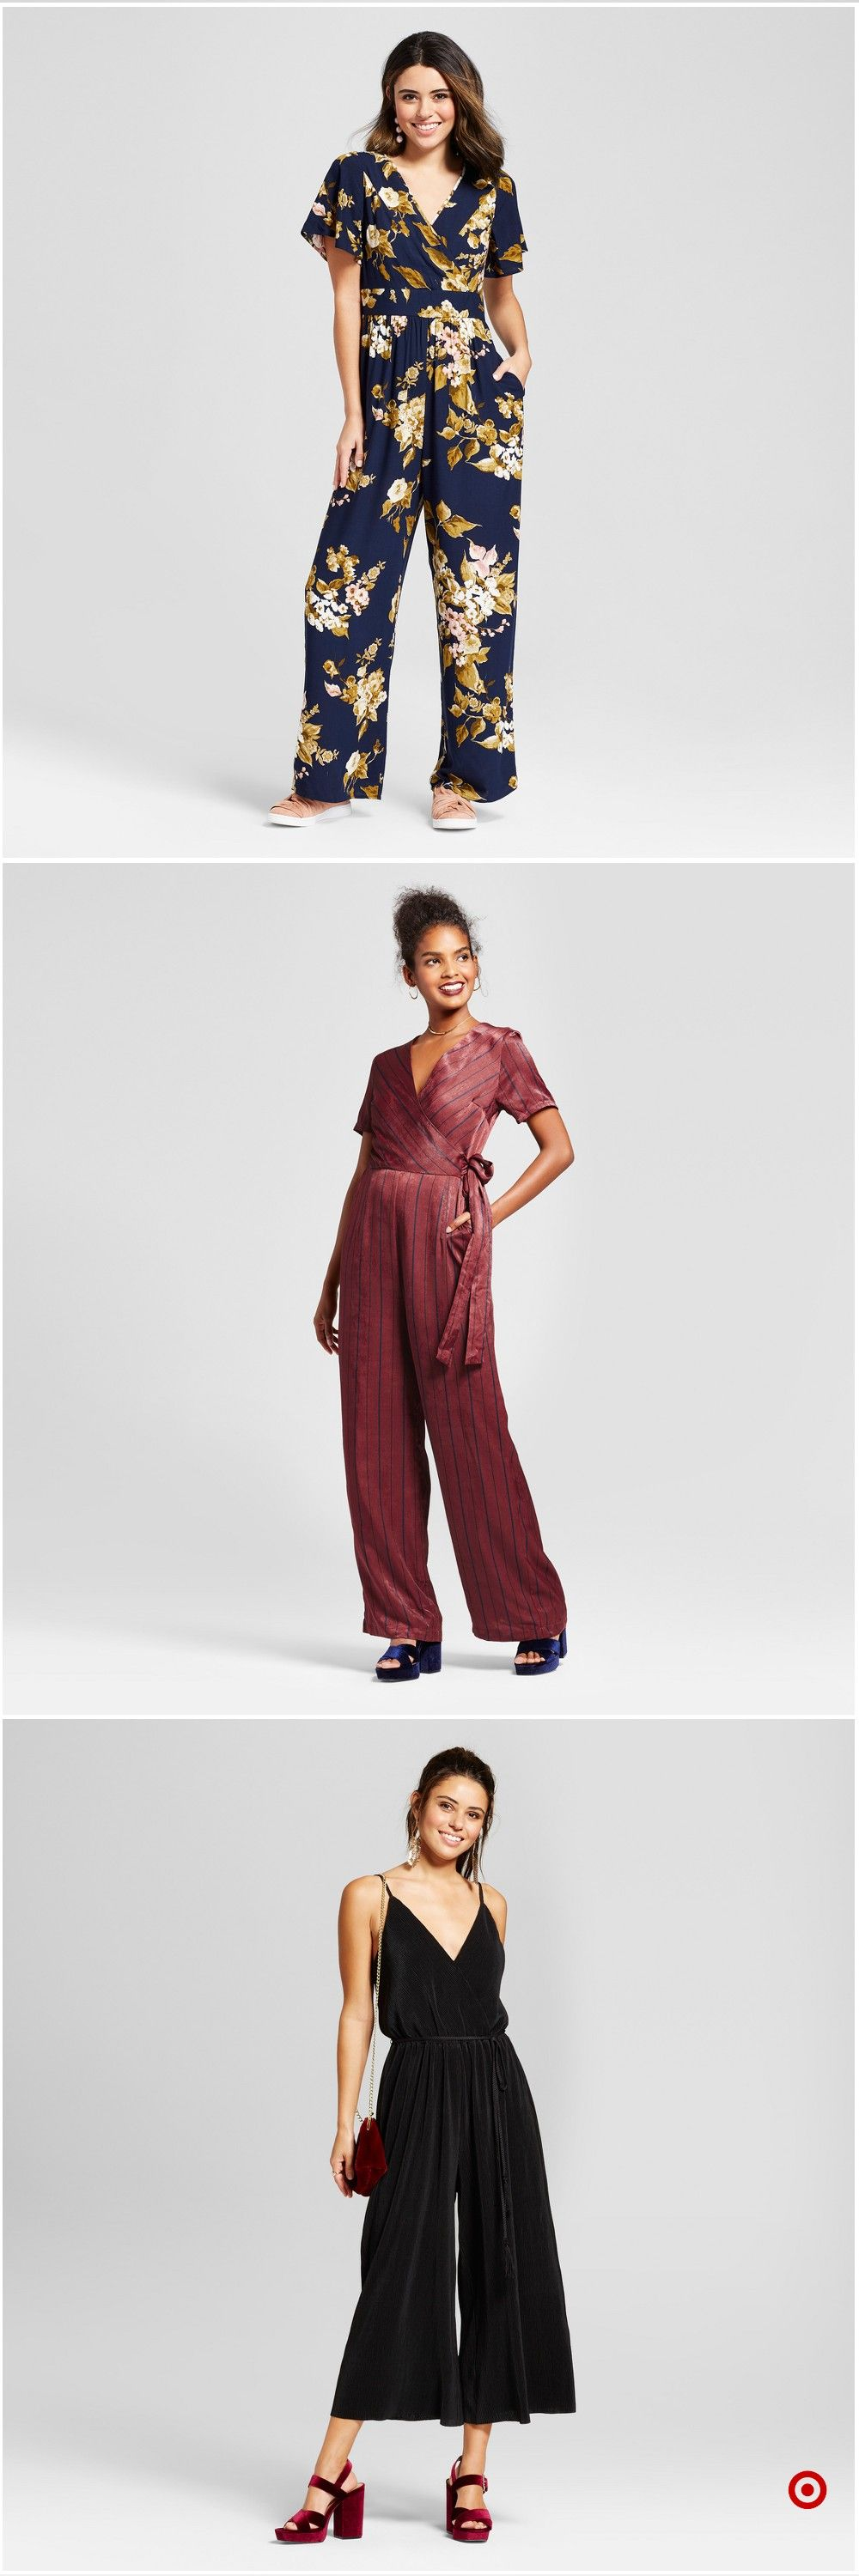 f35e3e979882 Shop Target for jumpsuits you will love at great low prices. Free shipping  on orders of  35+ or free same-day pick-up in store.